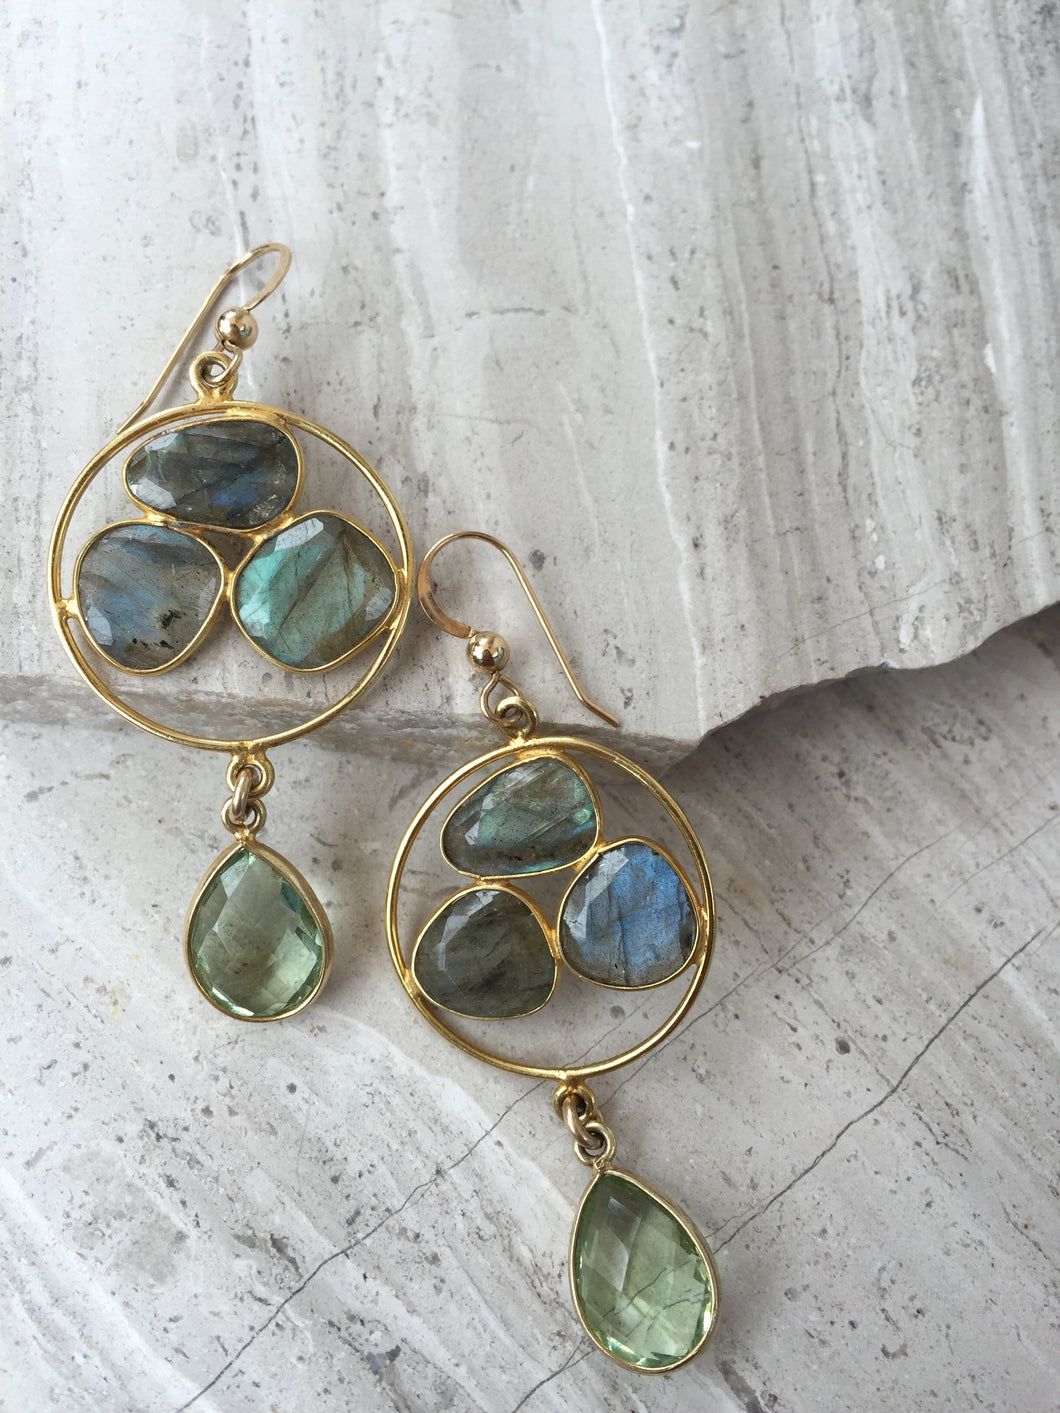 Labradorite Trio Earrings, gold